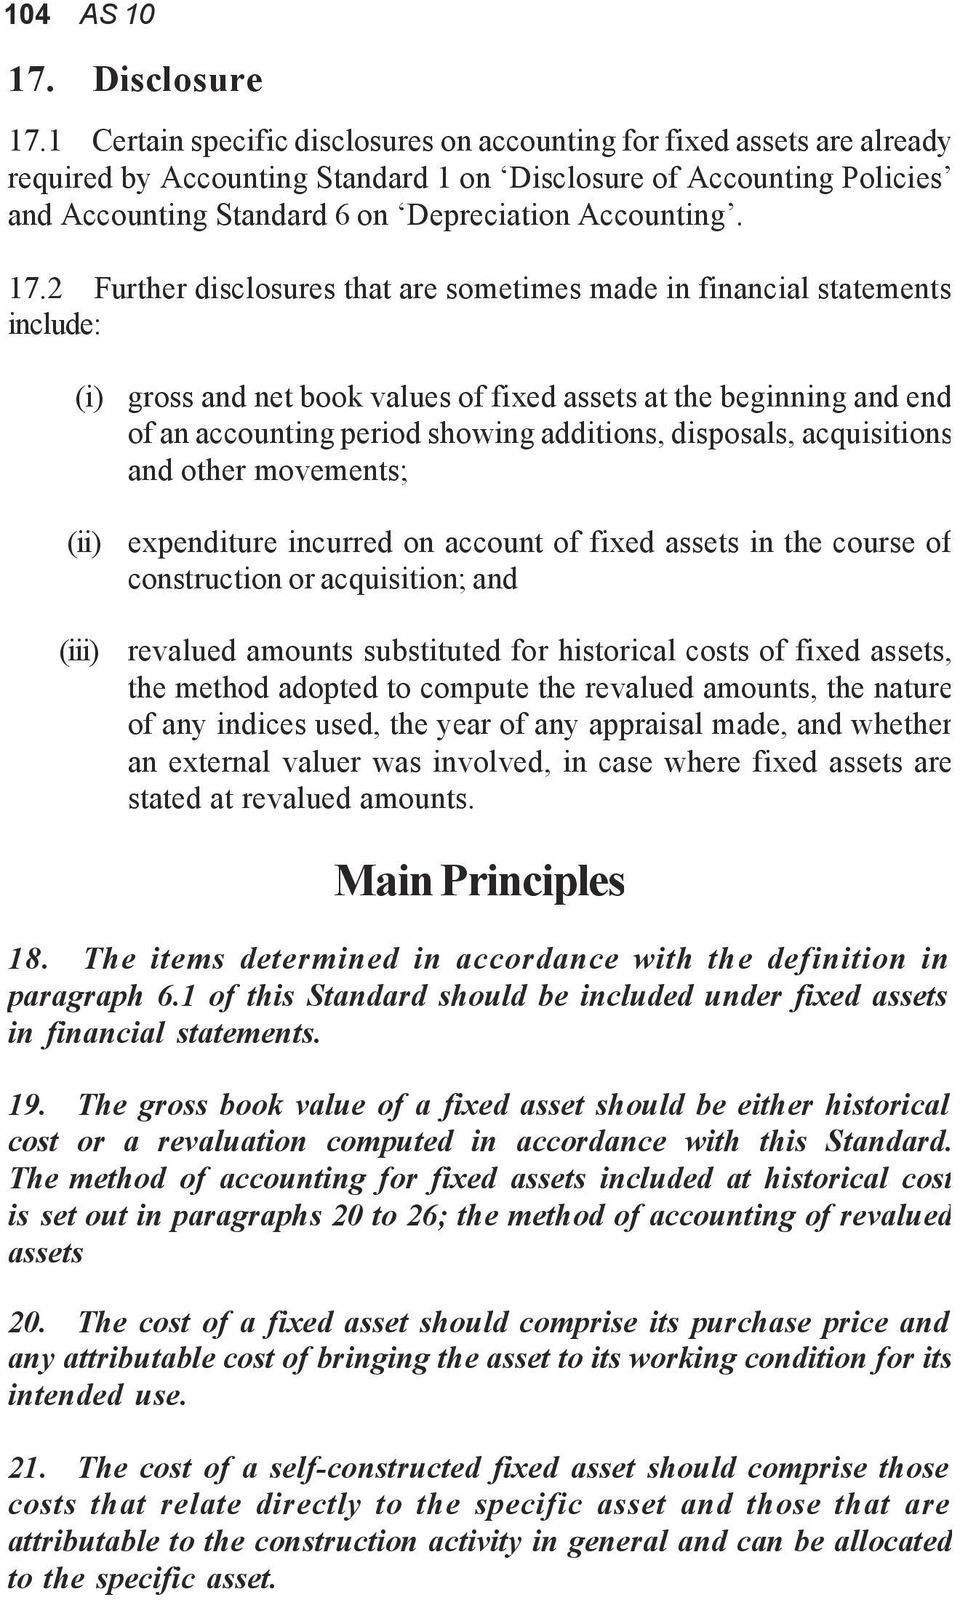 17.2 Further disclosures that are sometimes made in financial statements include: (i) gross and net book values of fixed assets at the beginning and end of an accounting period showing additions,